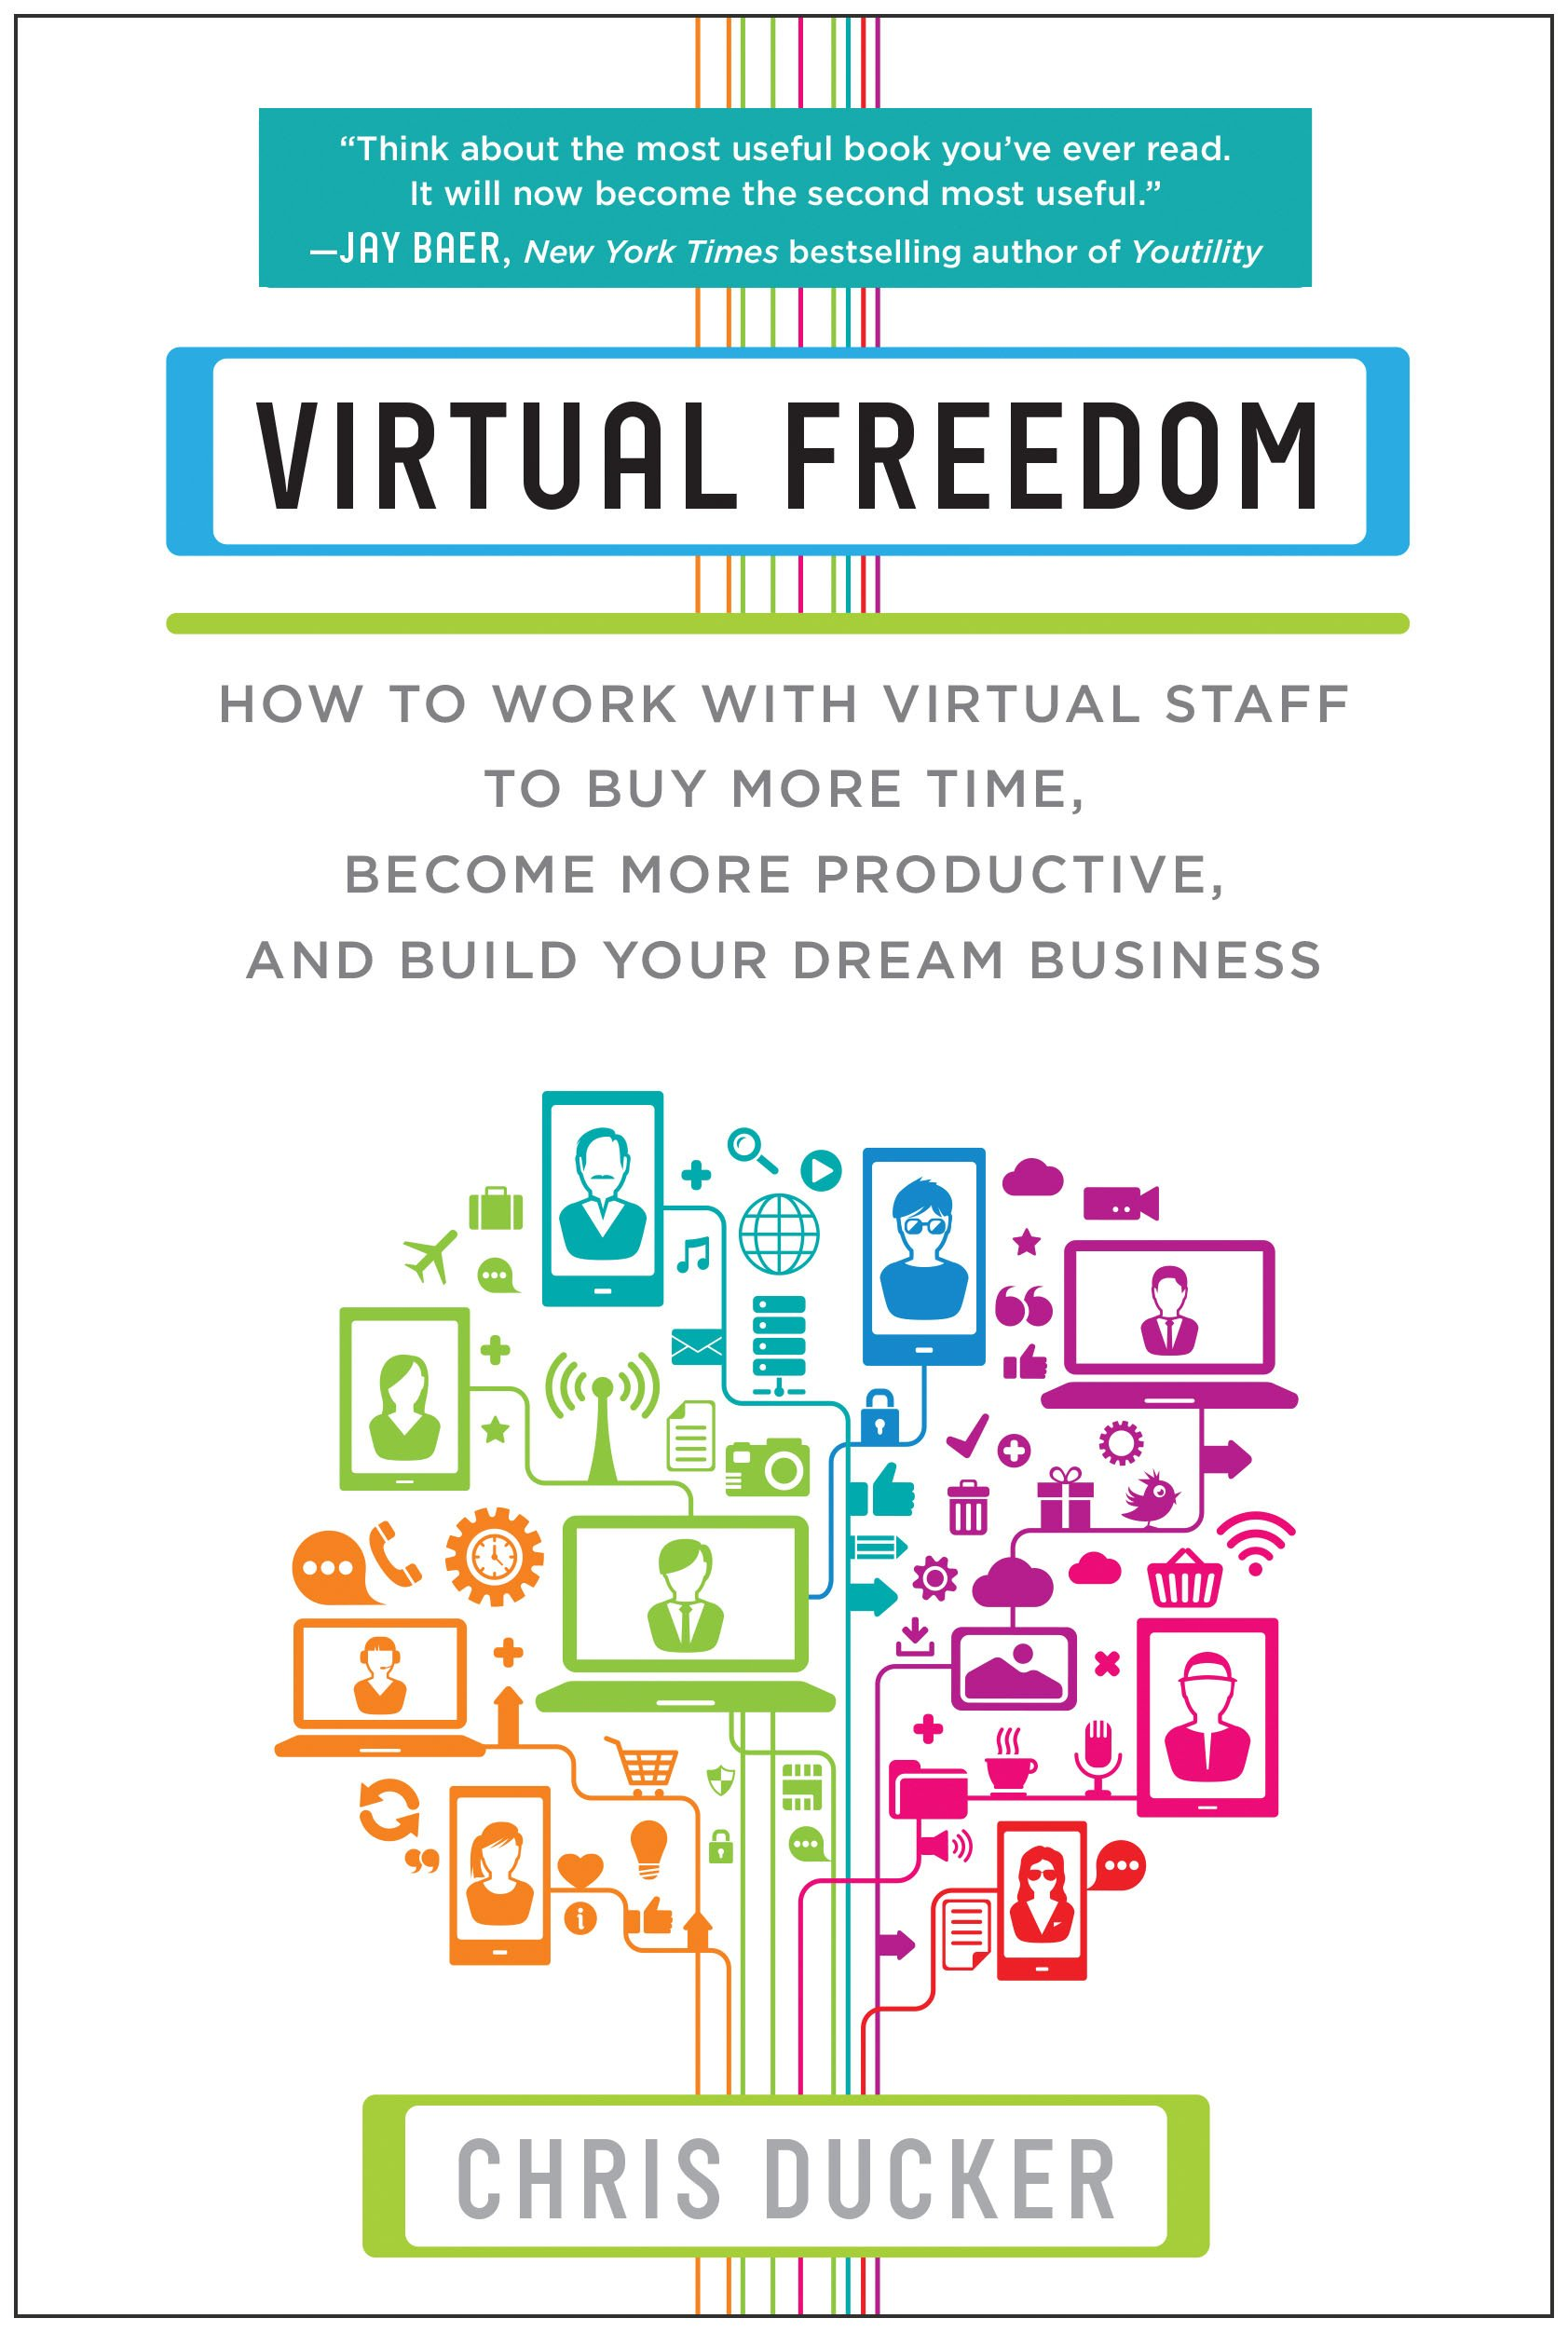 Virtual Freedom: How to Work with Virtual Staff to Buy More Time, Become More Productive, and Build Your Dream Business by BenBella Books (Image #1)